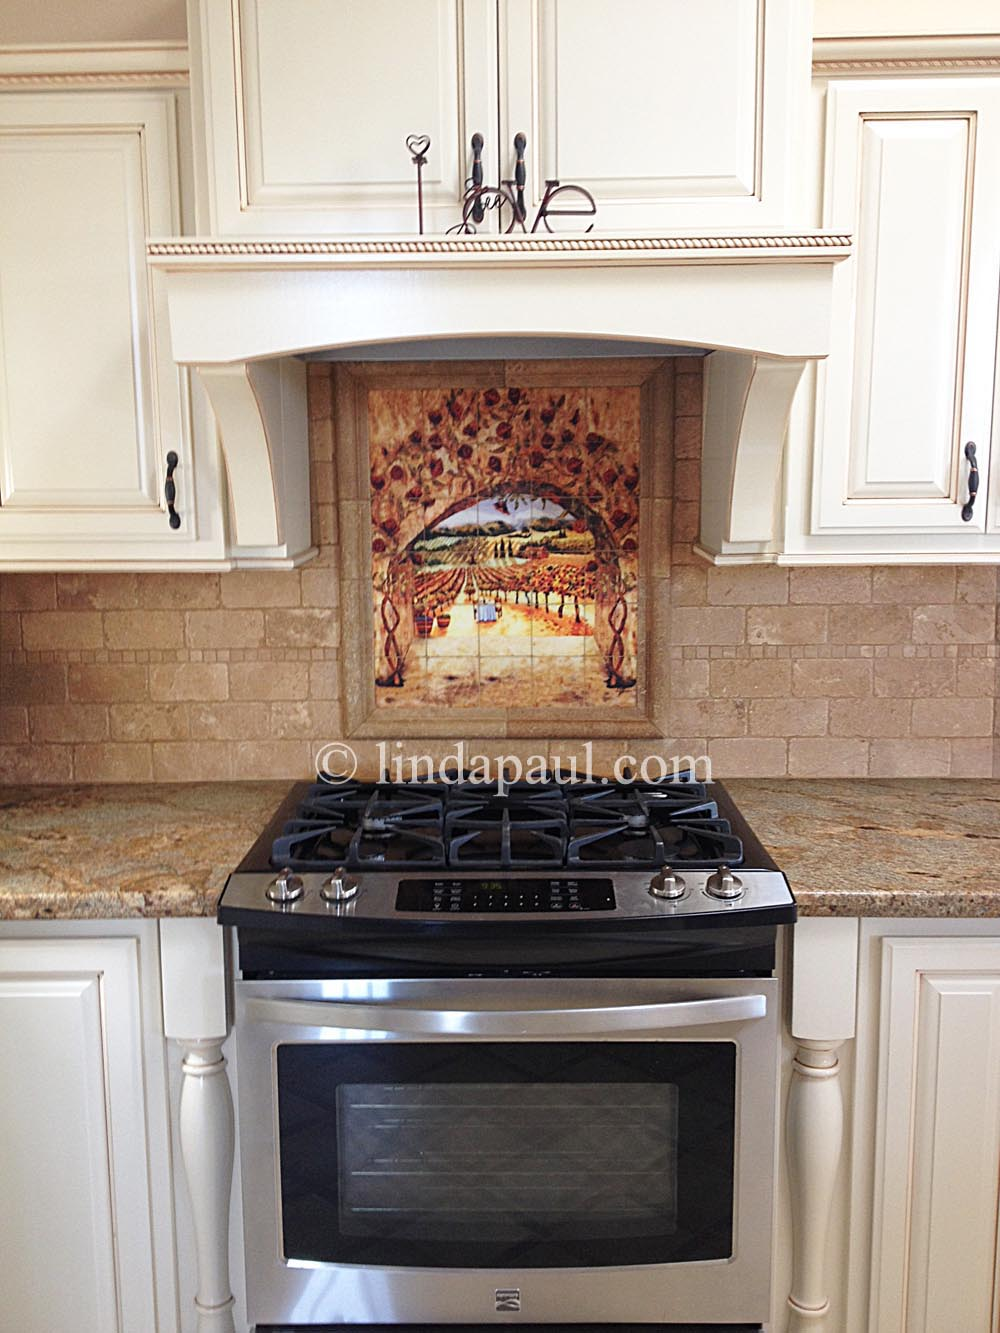 Customer Reviews of Tile Murals and Mosaic Kitchen Backsplashes